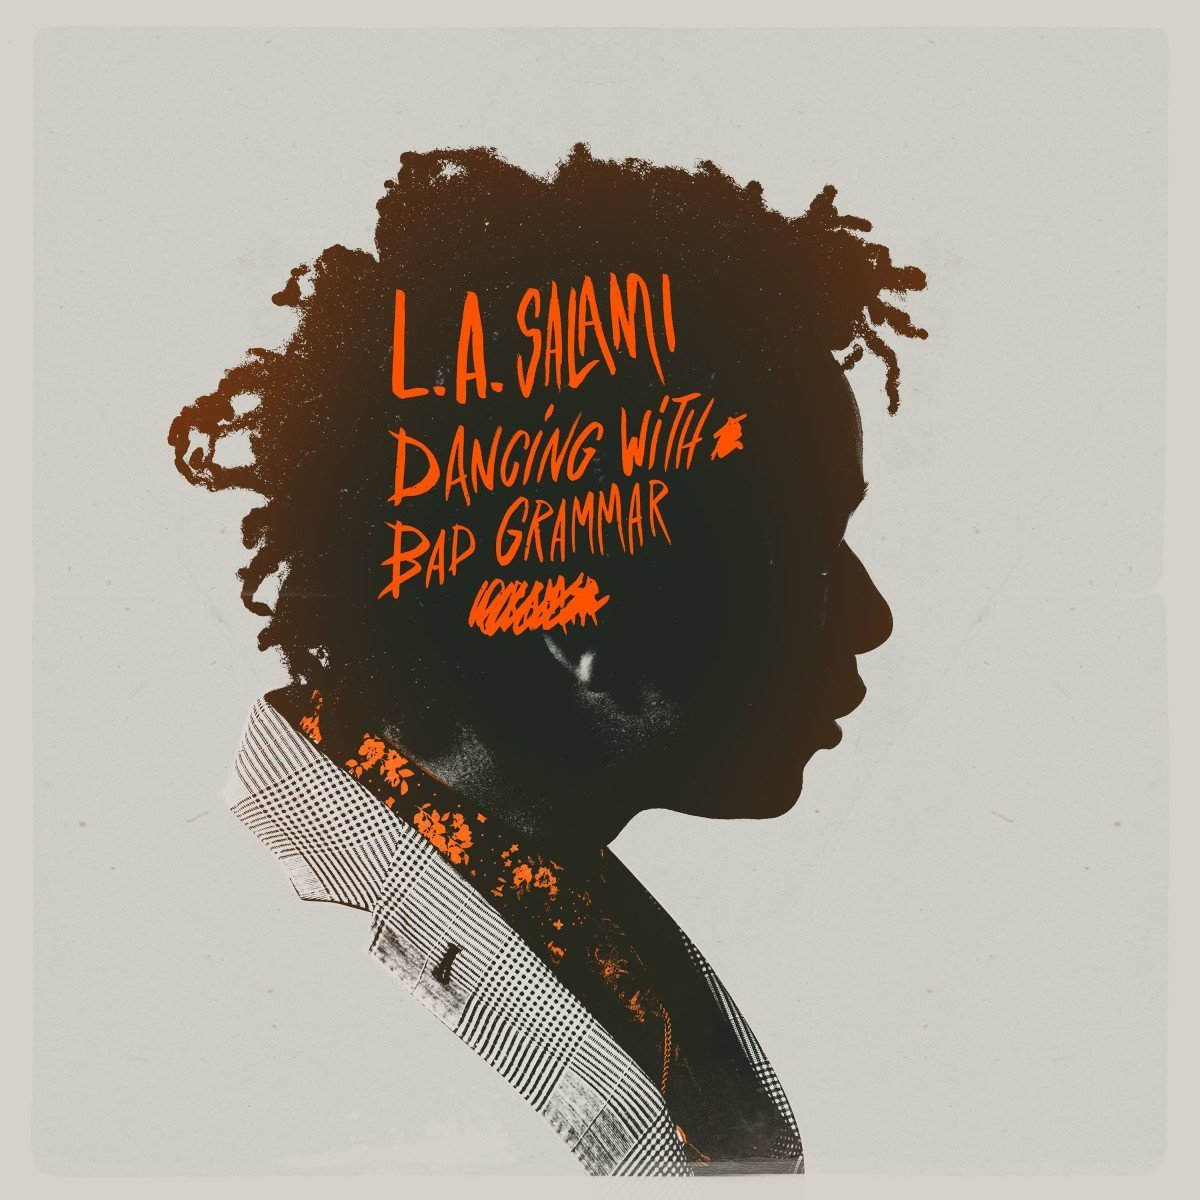 L.A. Salami - Dancing With Bad Grammar: The Directors Cut